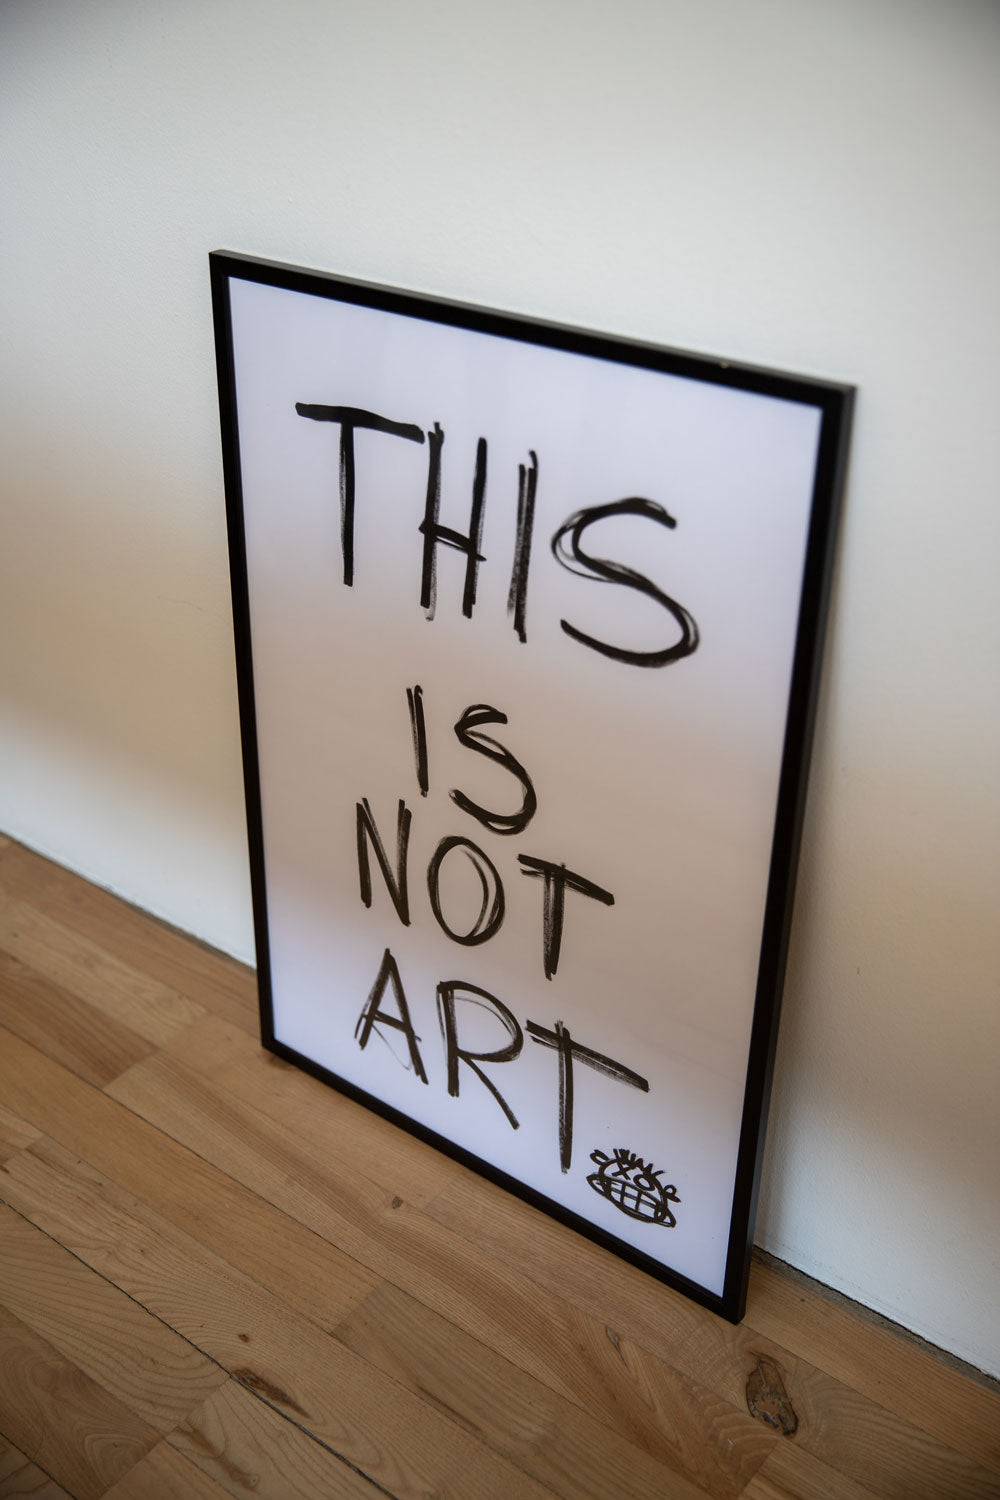 This is not art (Original)